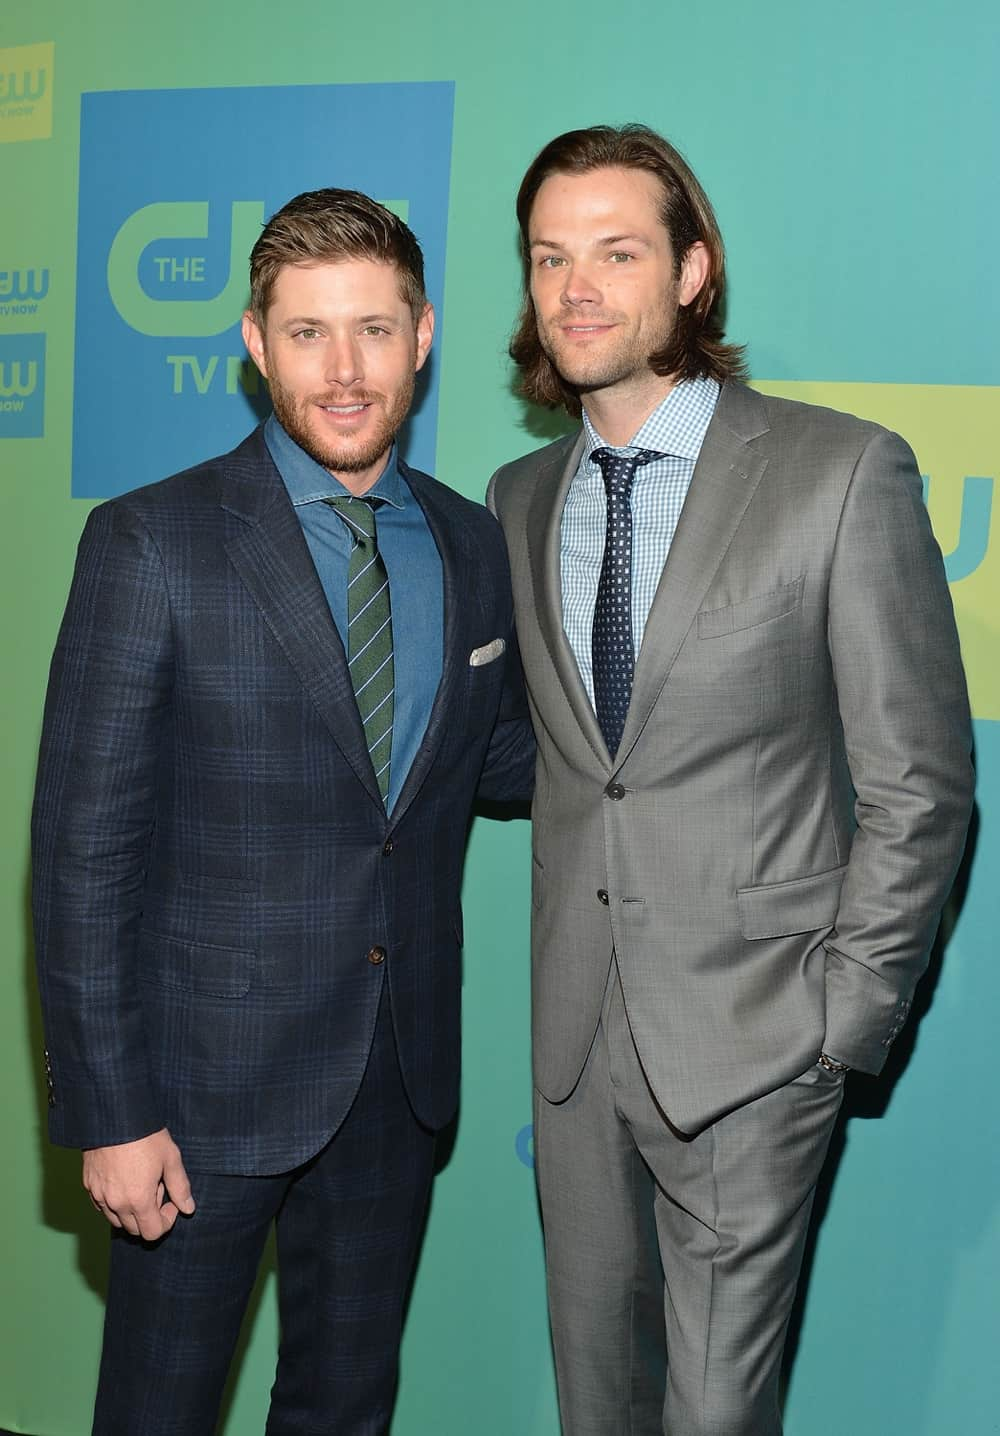 Jensen Ackles and Jared Padalecki The CW Network's New York 2014 Upfront Presentation